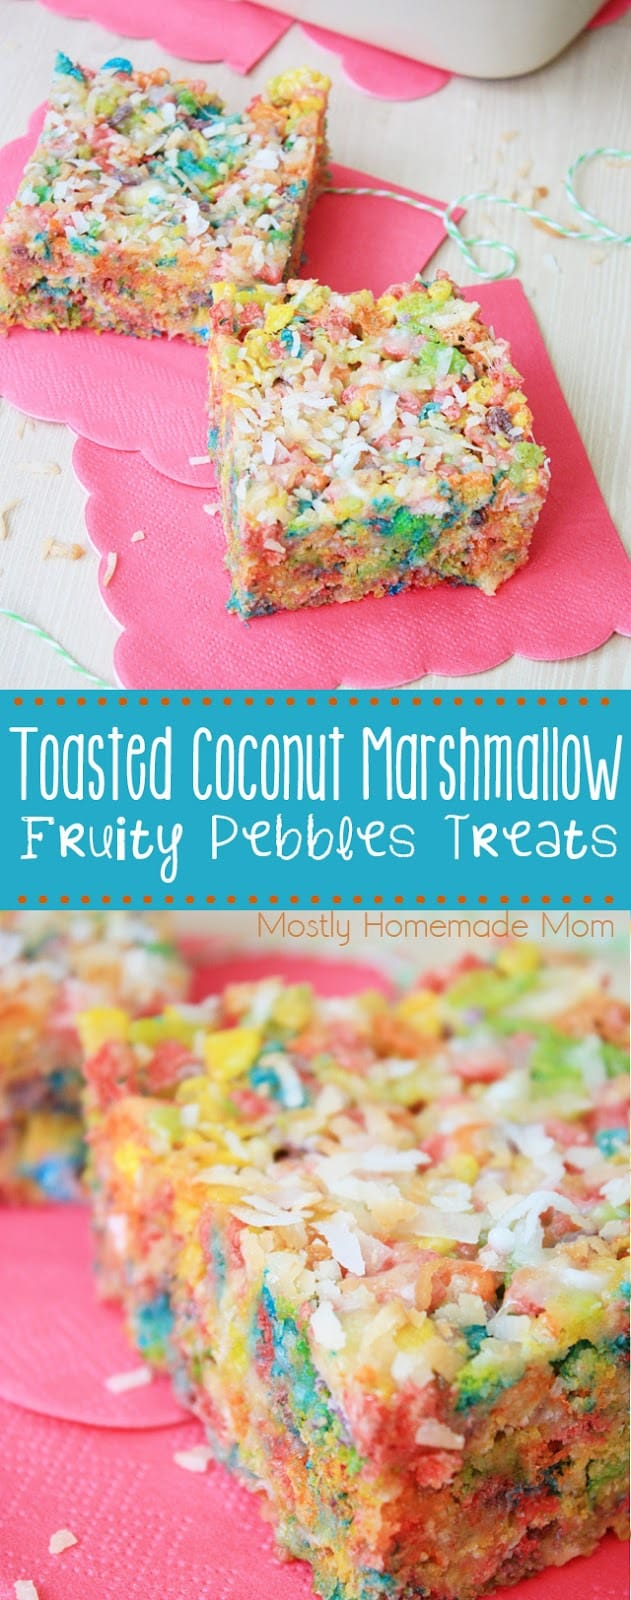 Fruity Pebbles Treats are filled with melted marshmallow, coconut pudding, and toasted coconut - the perfect lunch box snack! #lunch #lunchbox #recipe #fruitypebblestreats #dessert